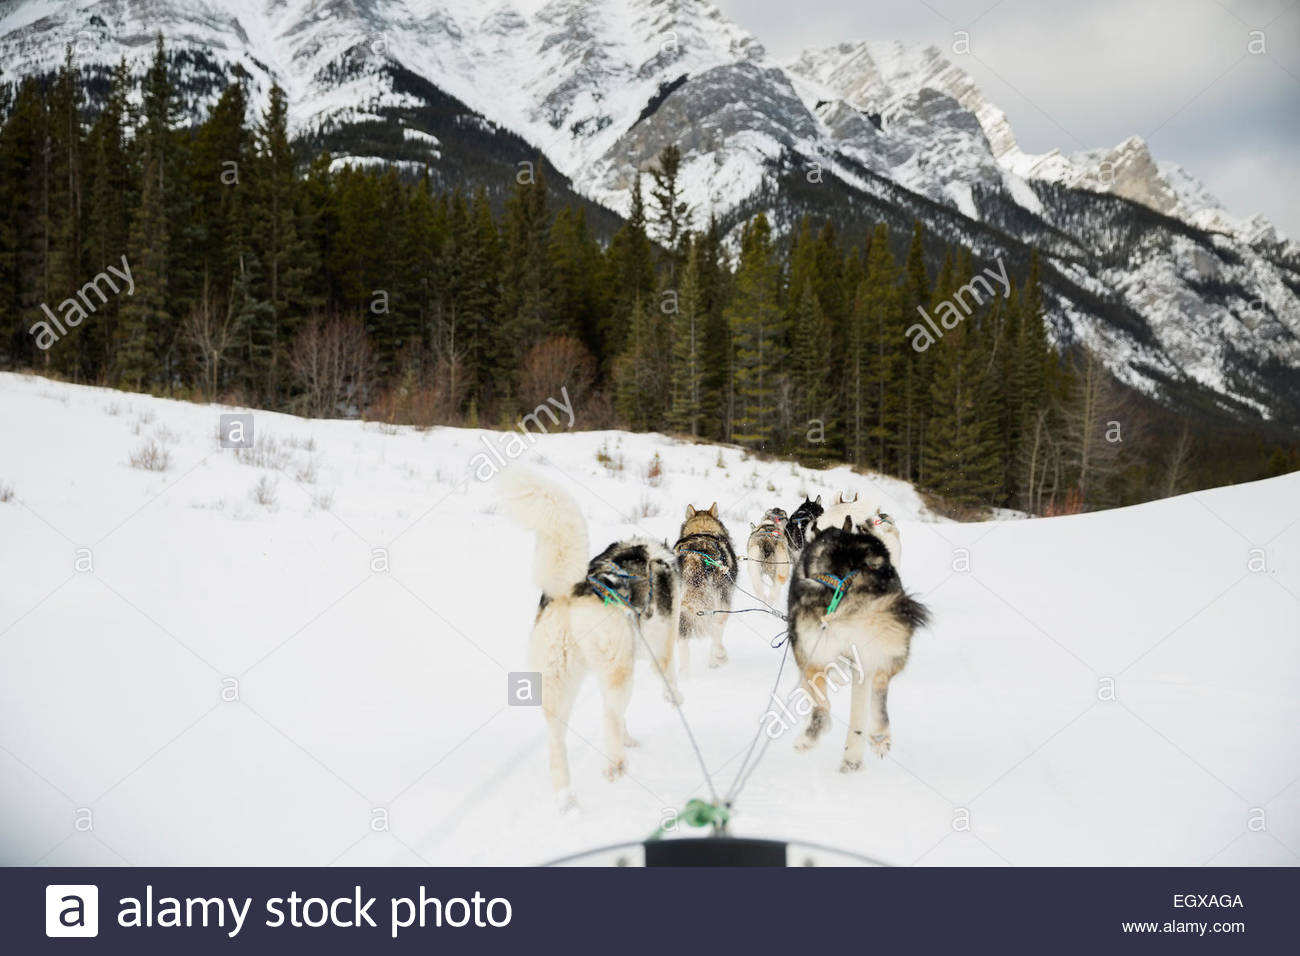 Dogsled on the move below snowy mountains - Stock Image